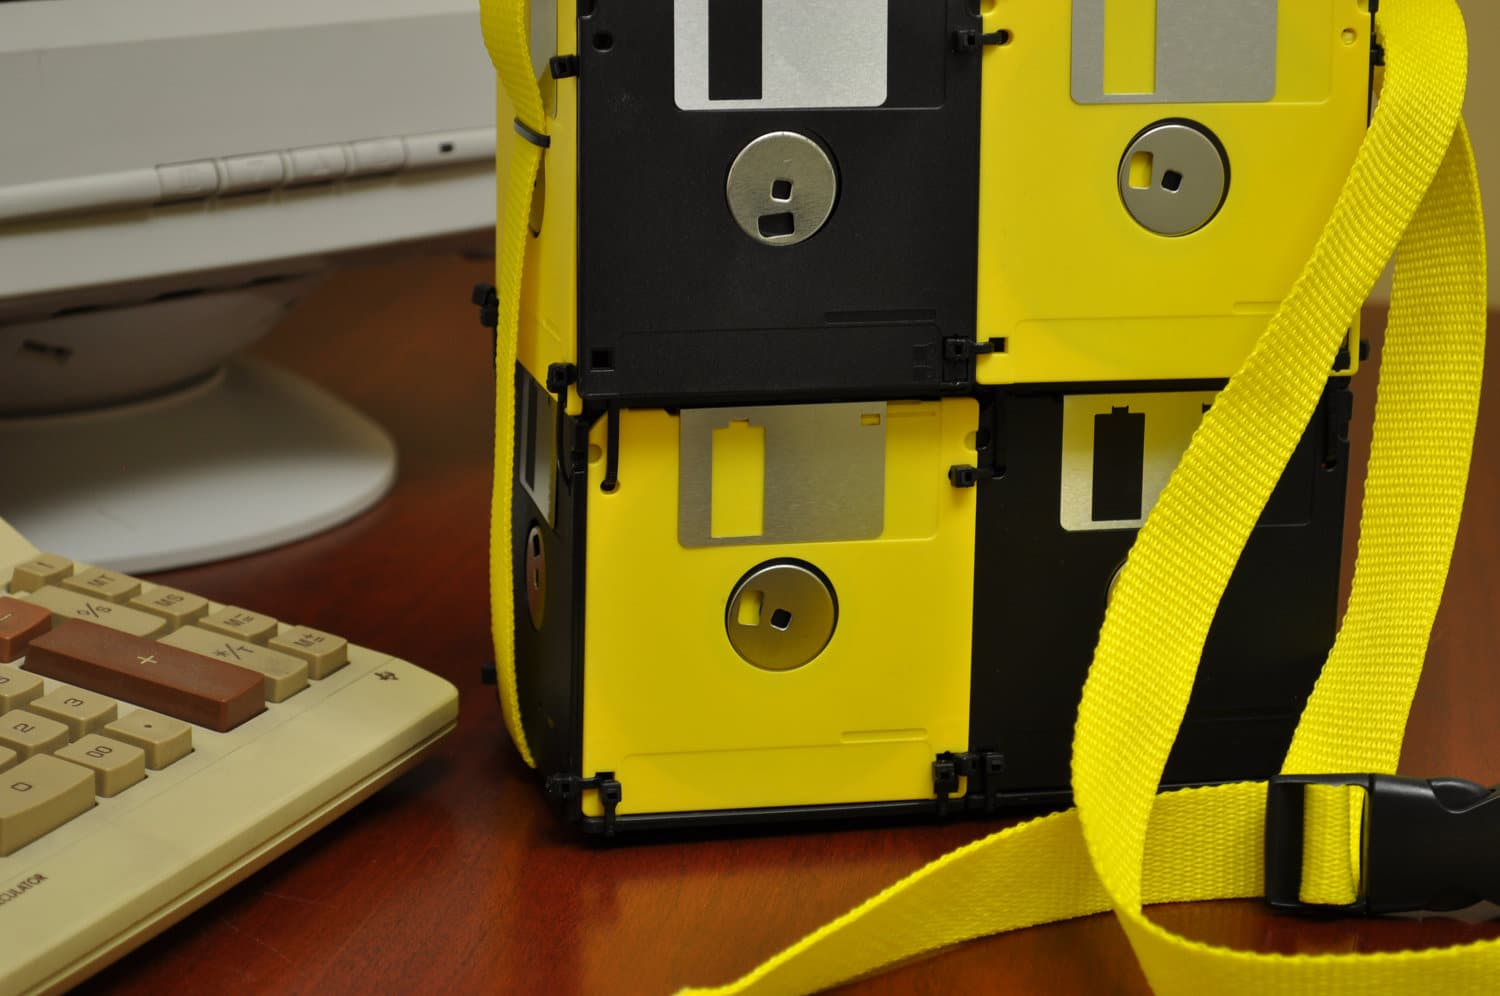 floppy-disk-storage-bag